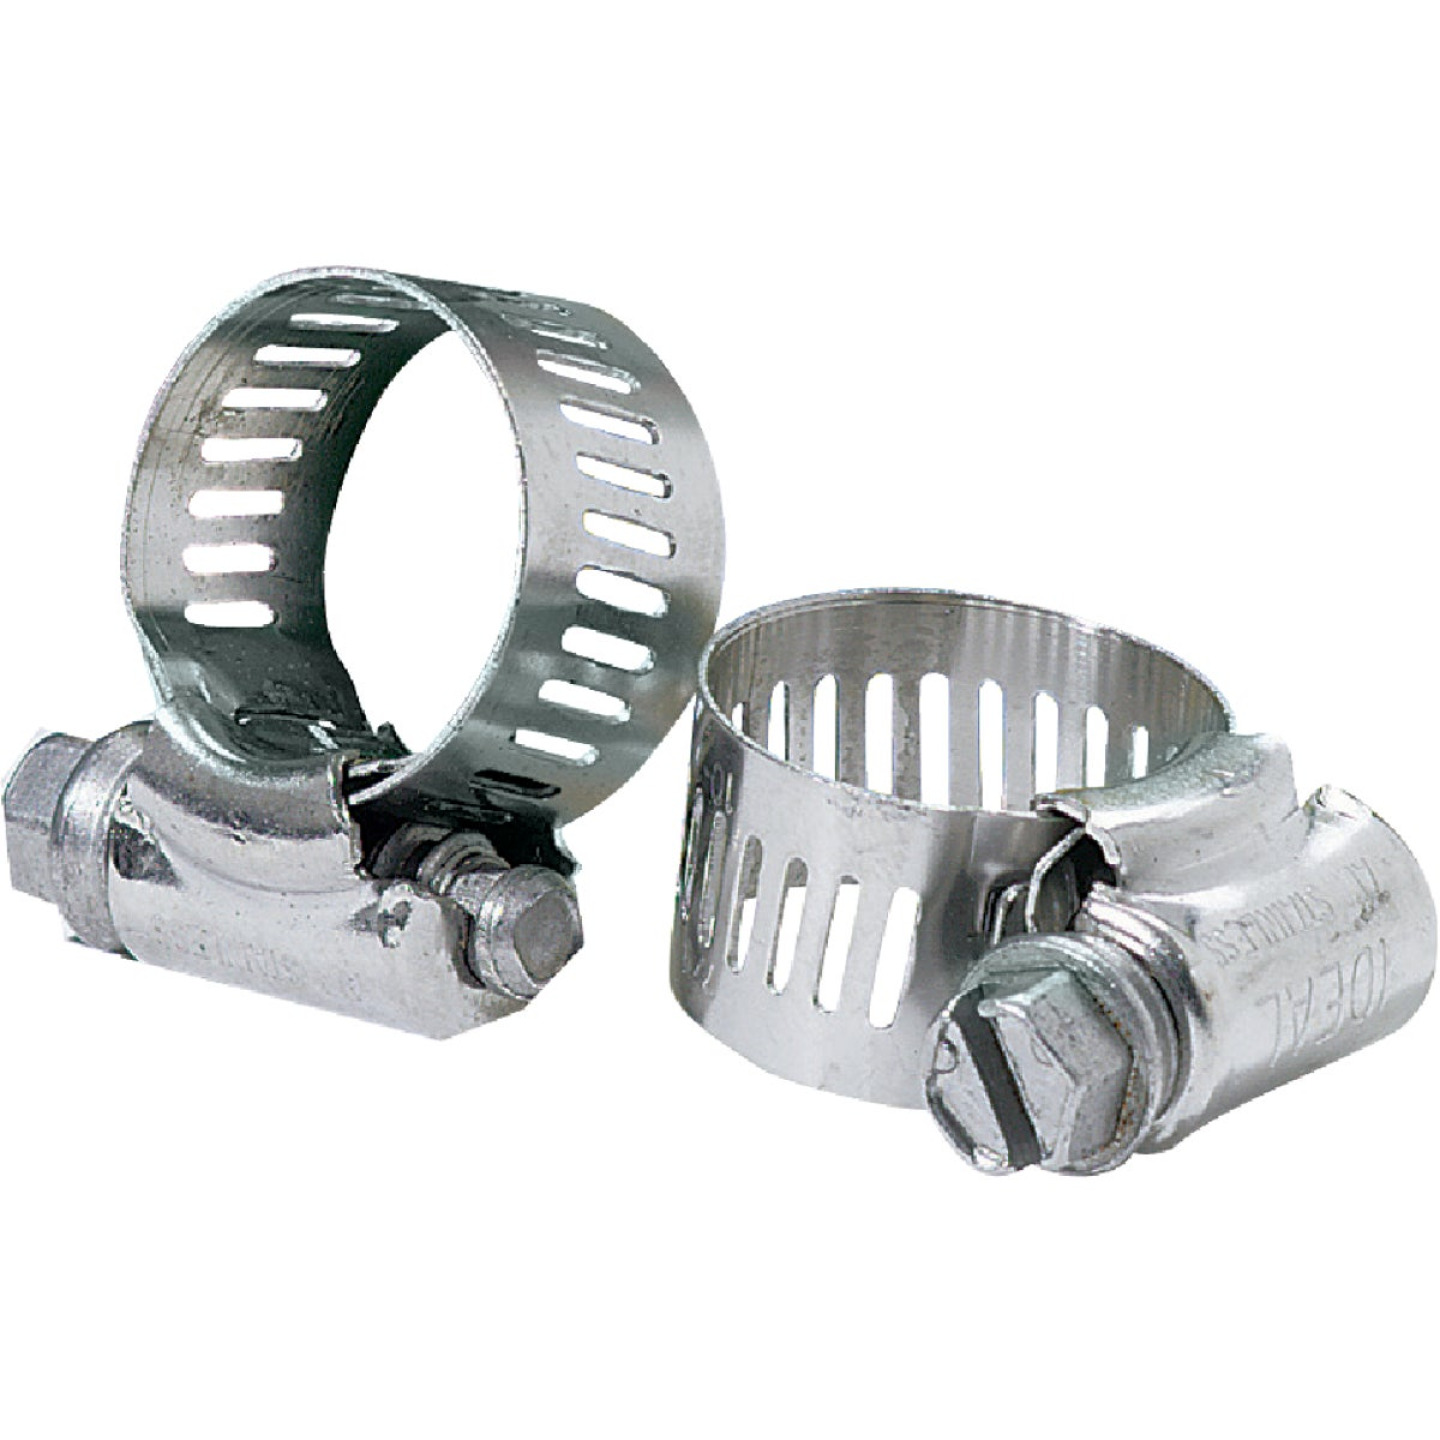 Ideal 11/16 In. - 1-1/2 In. 67 All Stainless Steel Hose Clamp Image 1